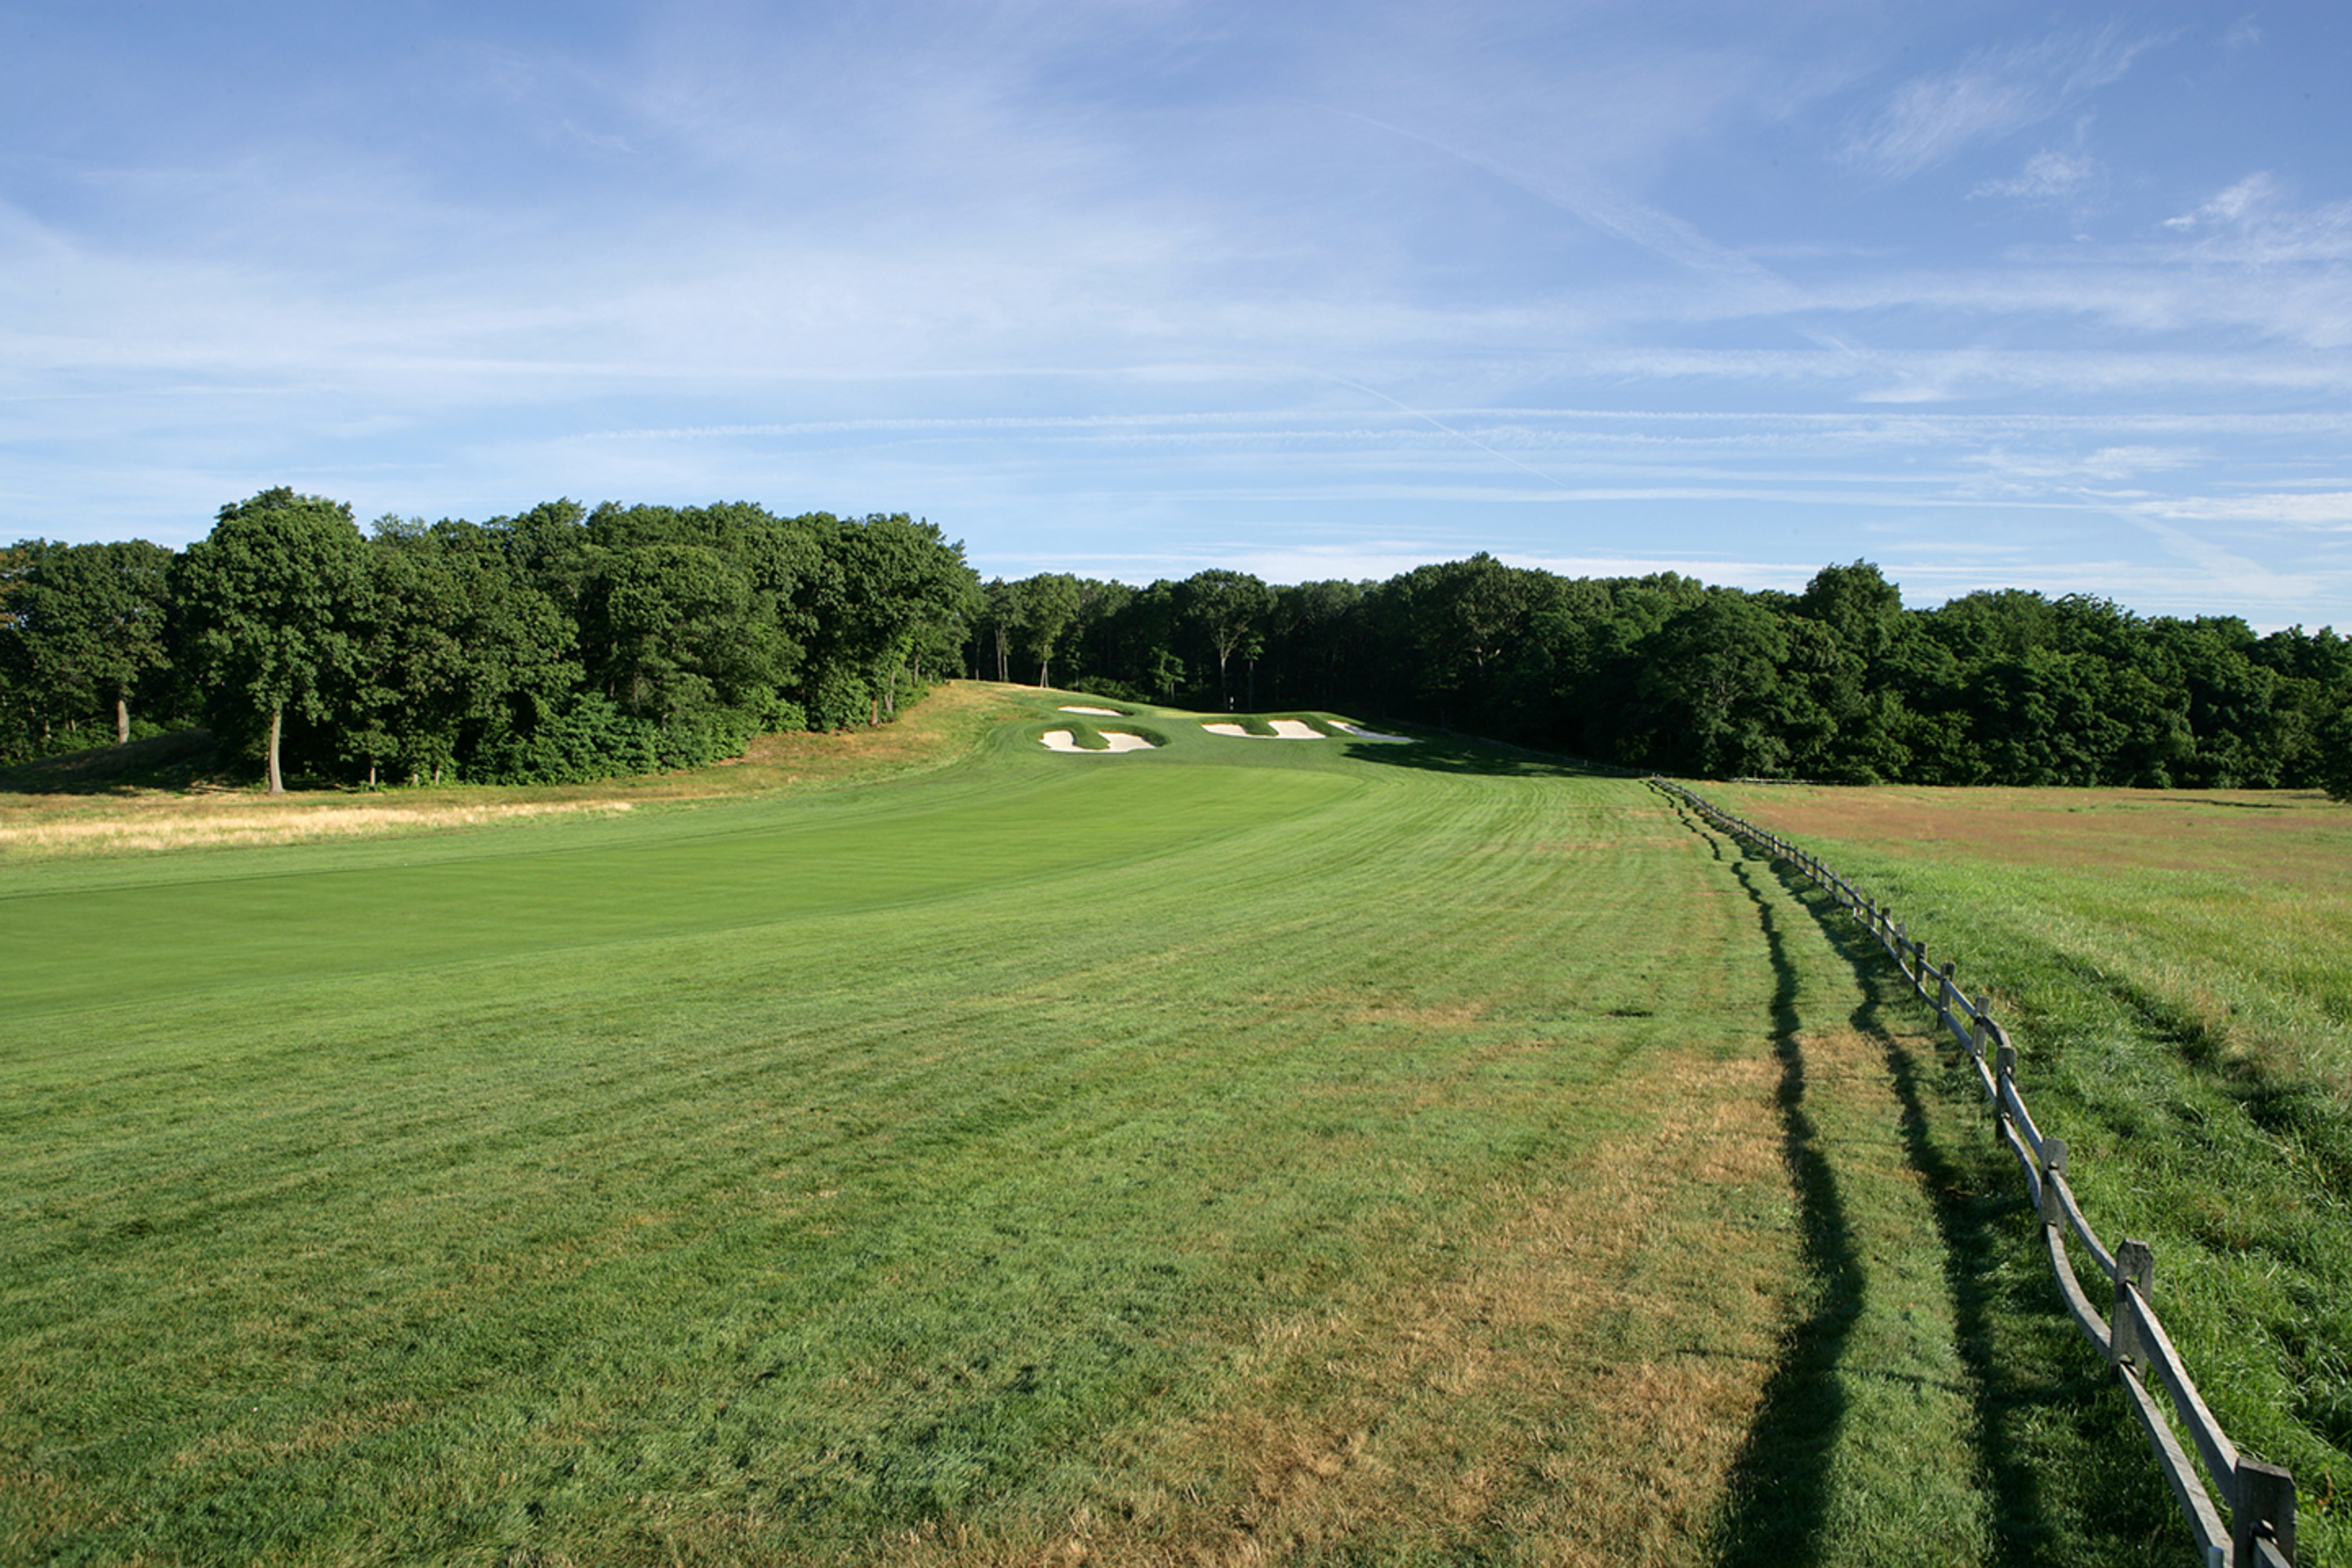 15th Hole, Black Course at Bethpage